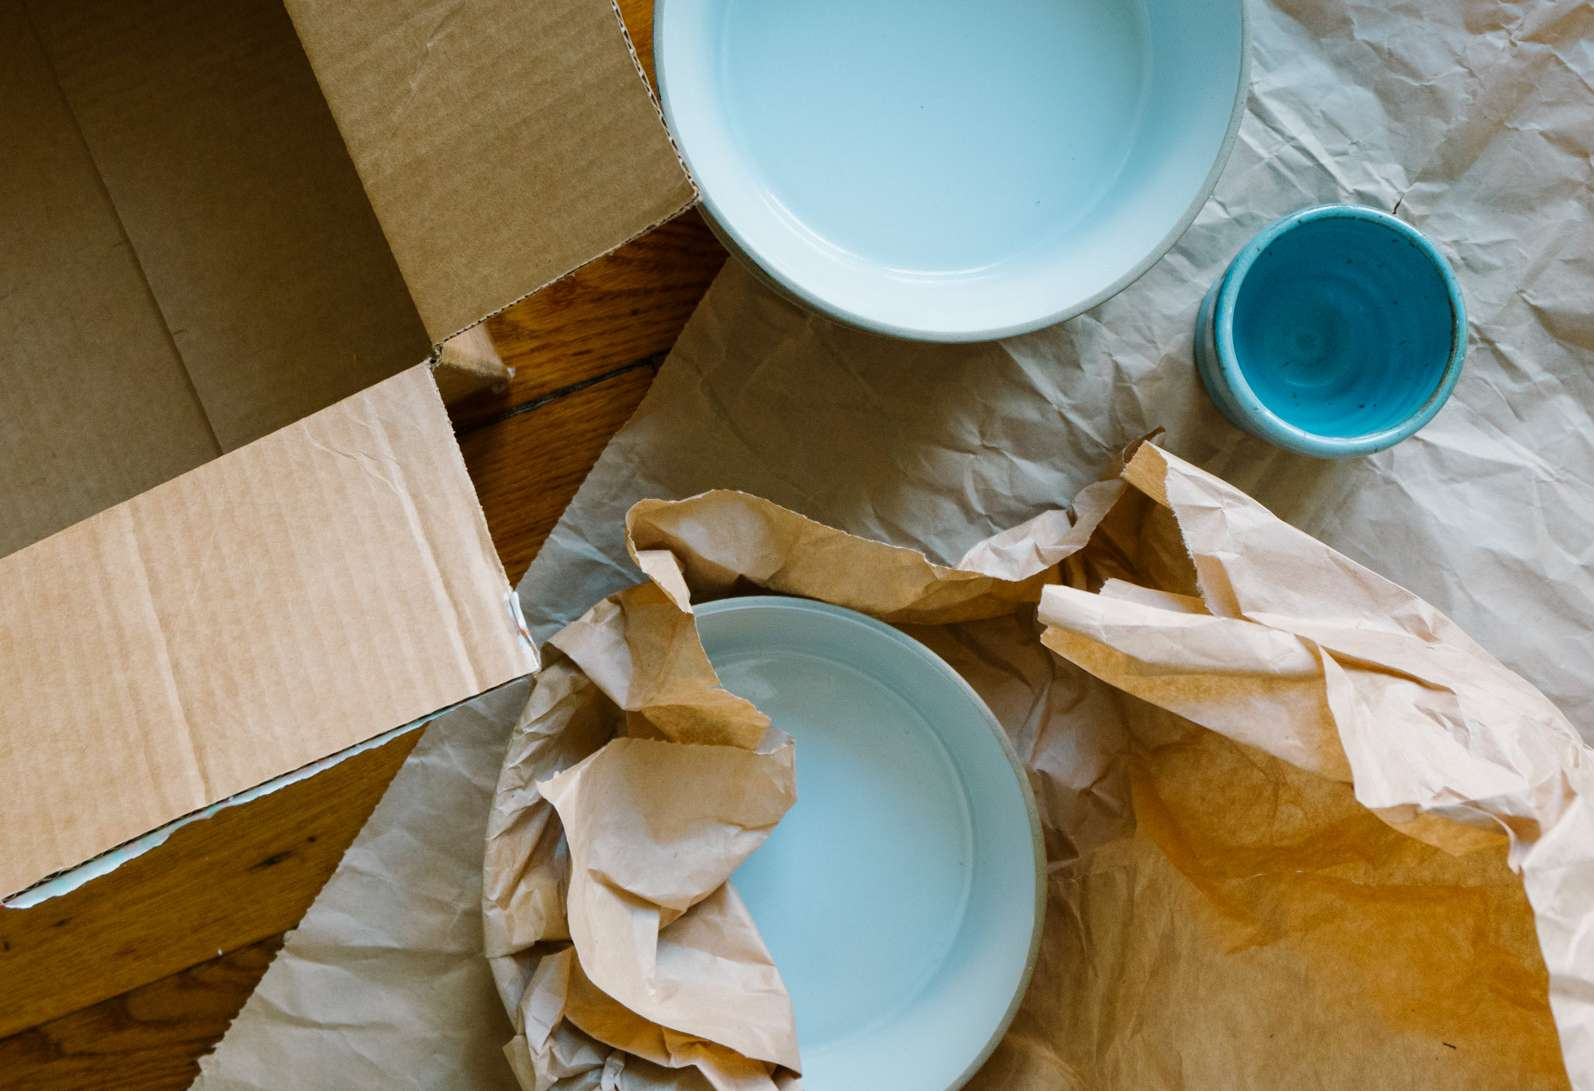 beginning to pack up dishes